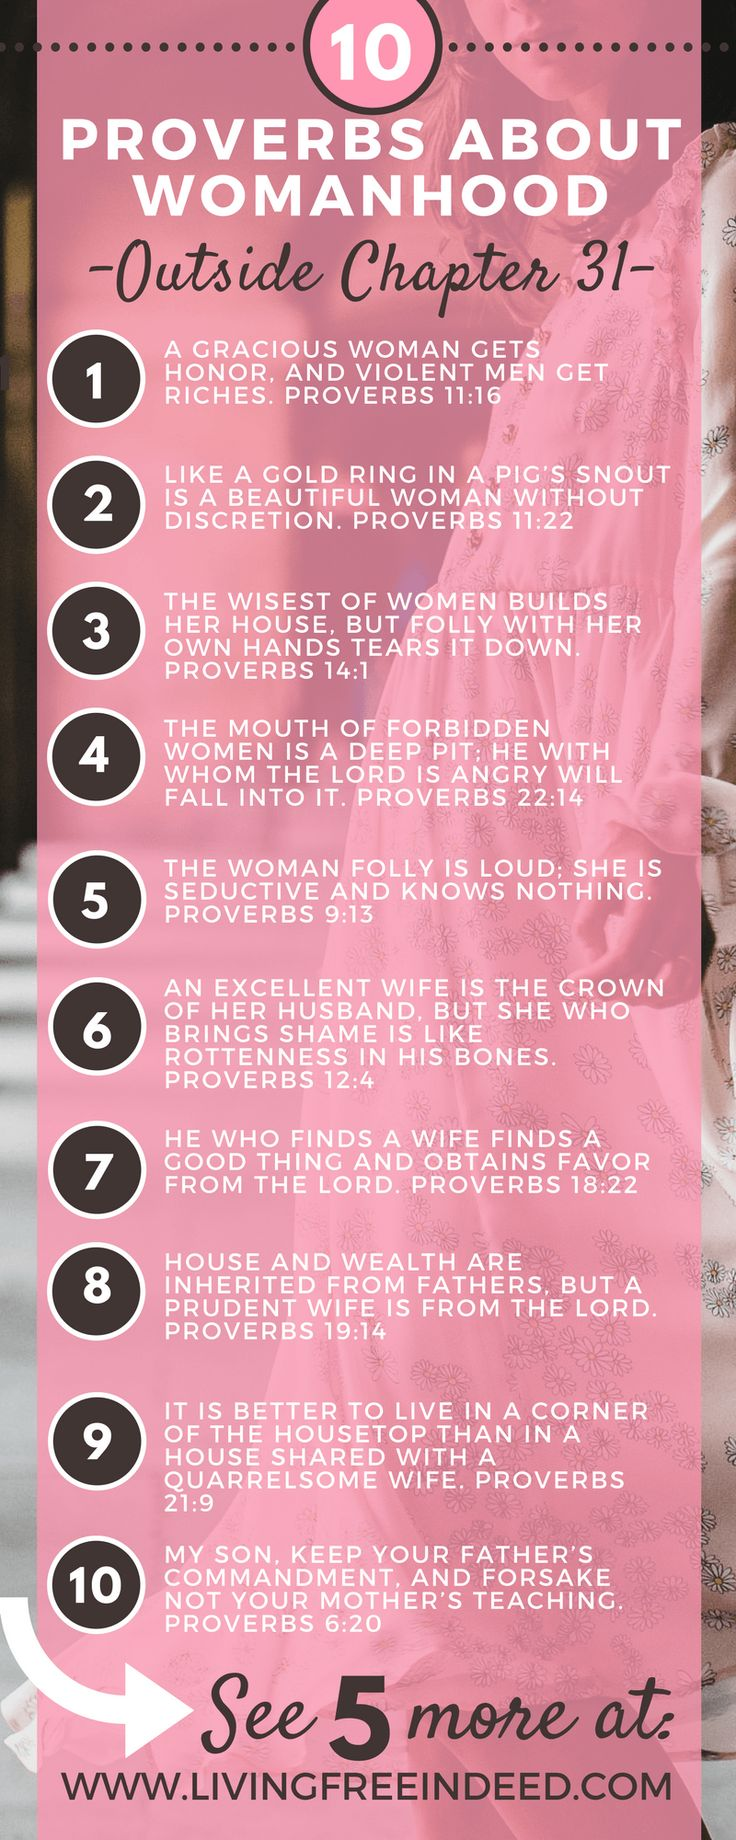 Proverbs is sprinkled with many insights about how a woman is to walk, and what womanly behavior is precious or repugnant to God. Check out these pieces of wisdom outside the beloved Chapter 31! | Bible Verses About Women | Biblical Womanhood | What the Bible Says About Women | How to Be a Woman of God | Proverbs about the Woman | Godly Womanhood | Women of the Word